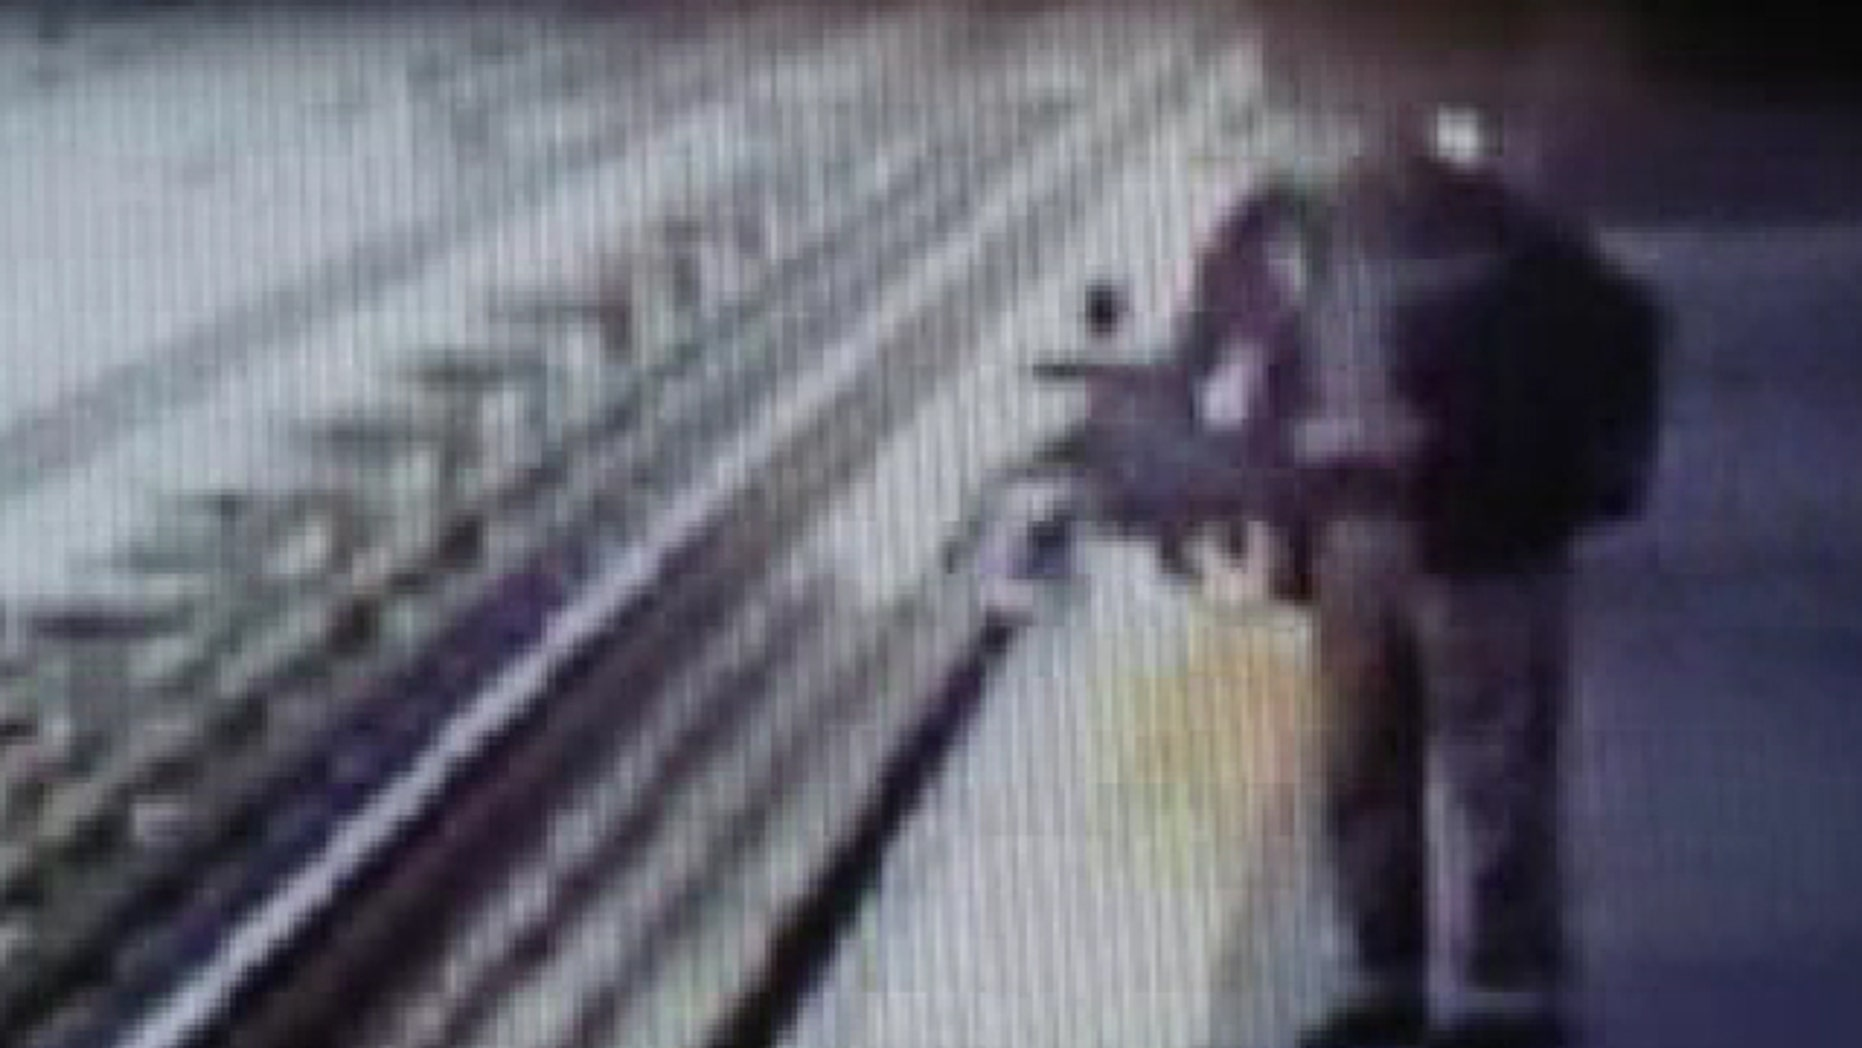 May 16, 2013: A baby's stroller falls into the train tracks in Philly in this video still.